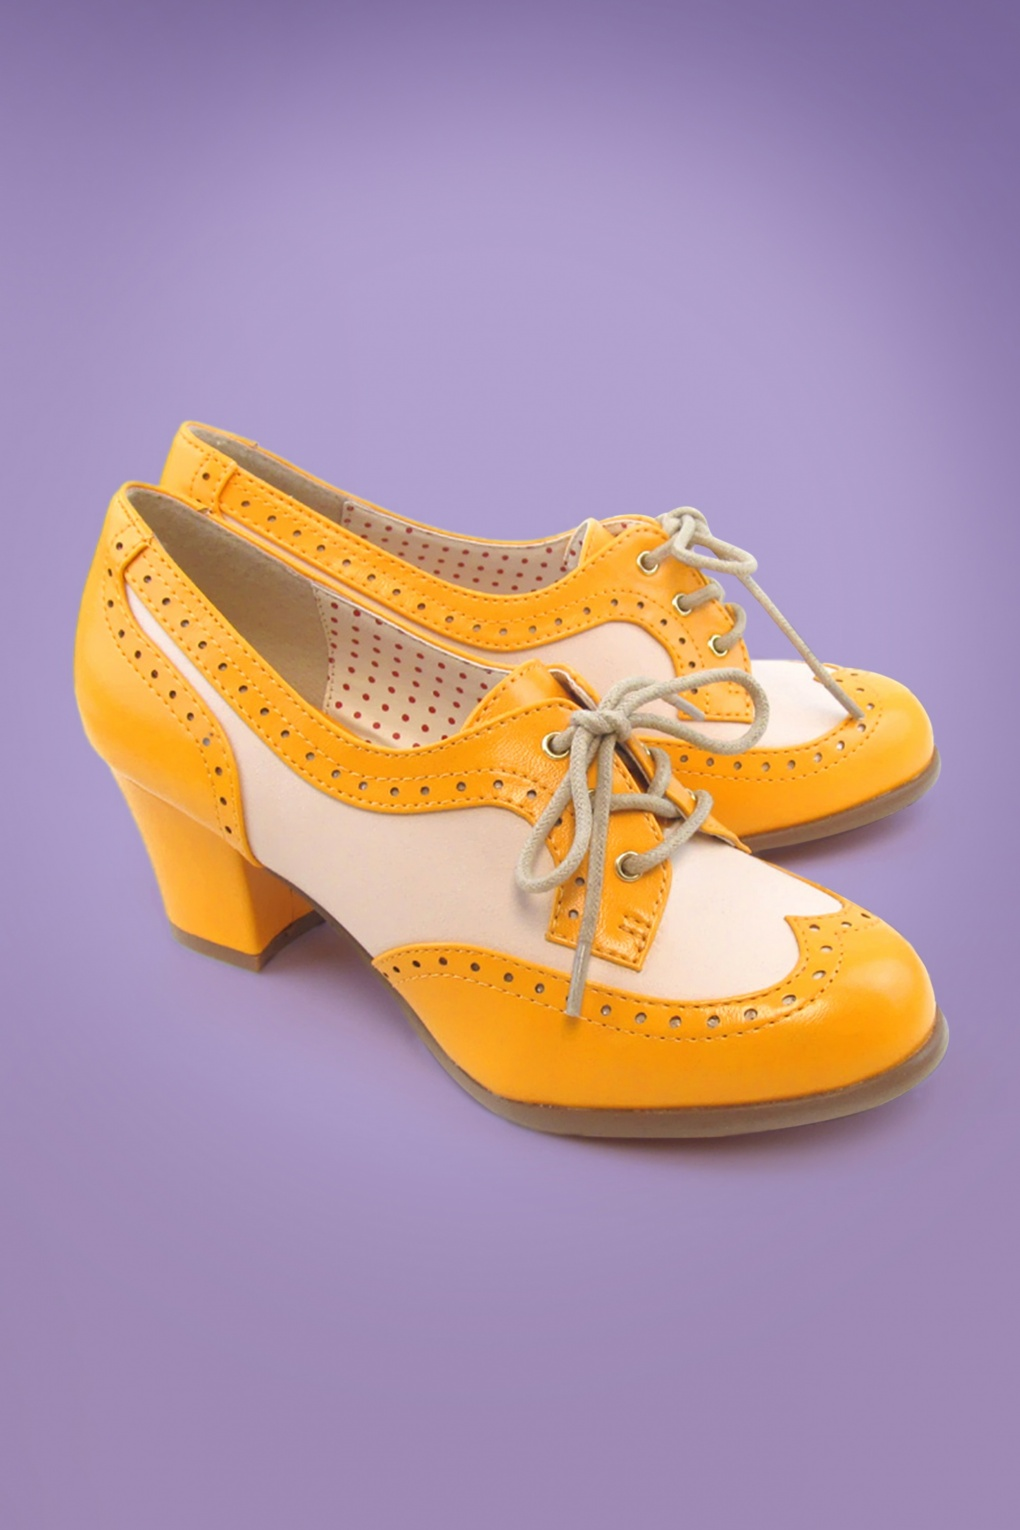 Pin Up Shoes- Heels, Pumps & Flats 40s Remmy Oxford Shoes in Mustard �68.49 AT vintagedancer.com